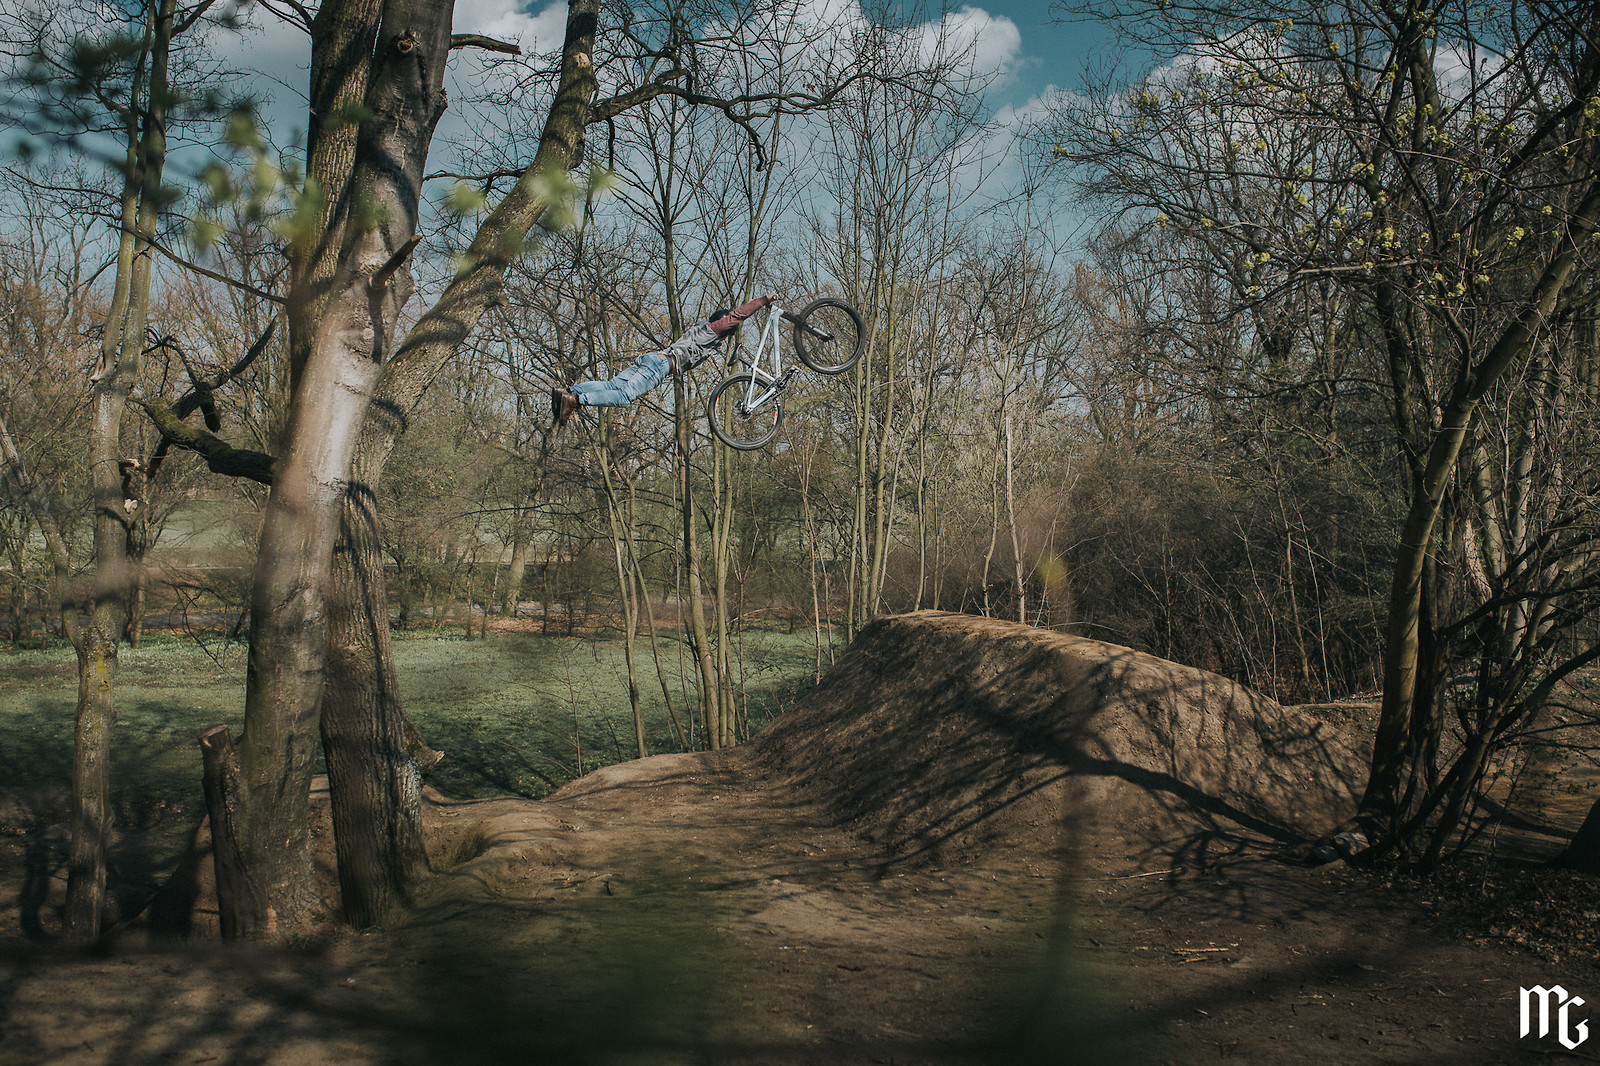 Superman! - Kick!Photo - Mountain Biking Pictures - Vital MTB